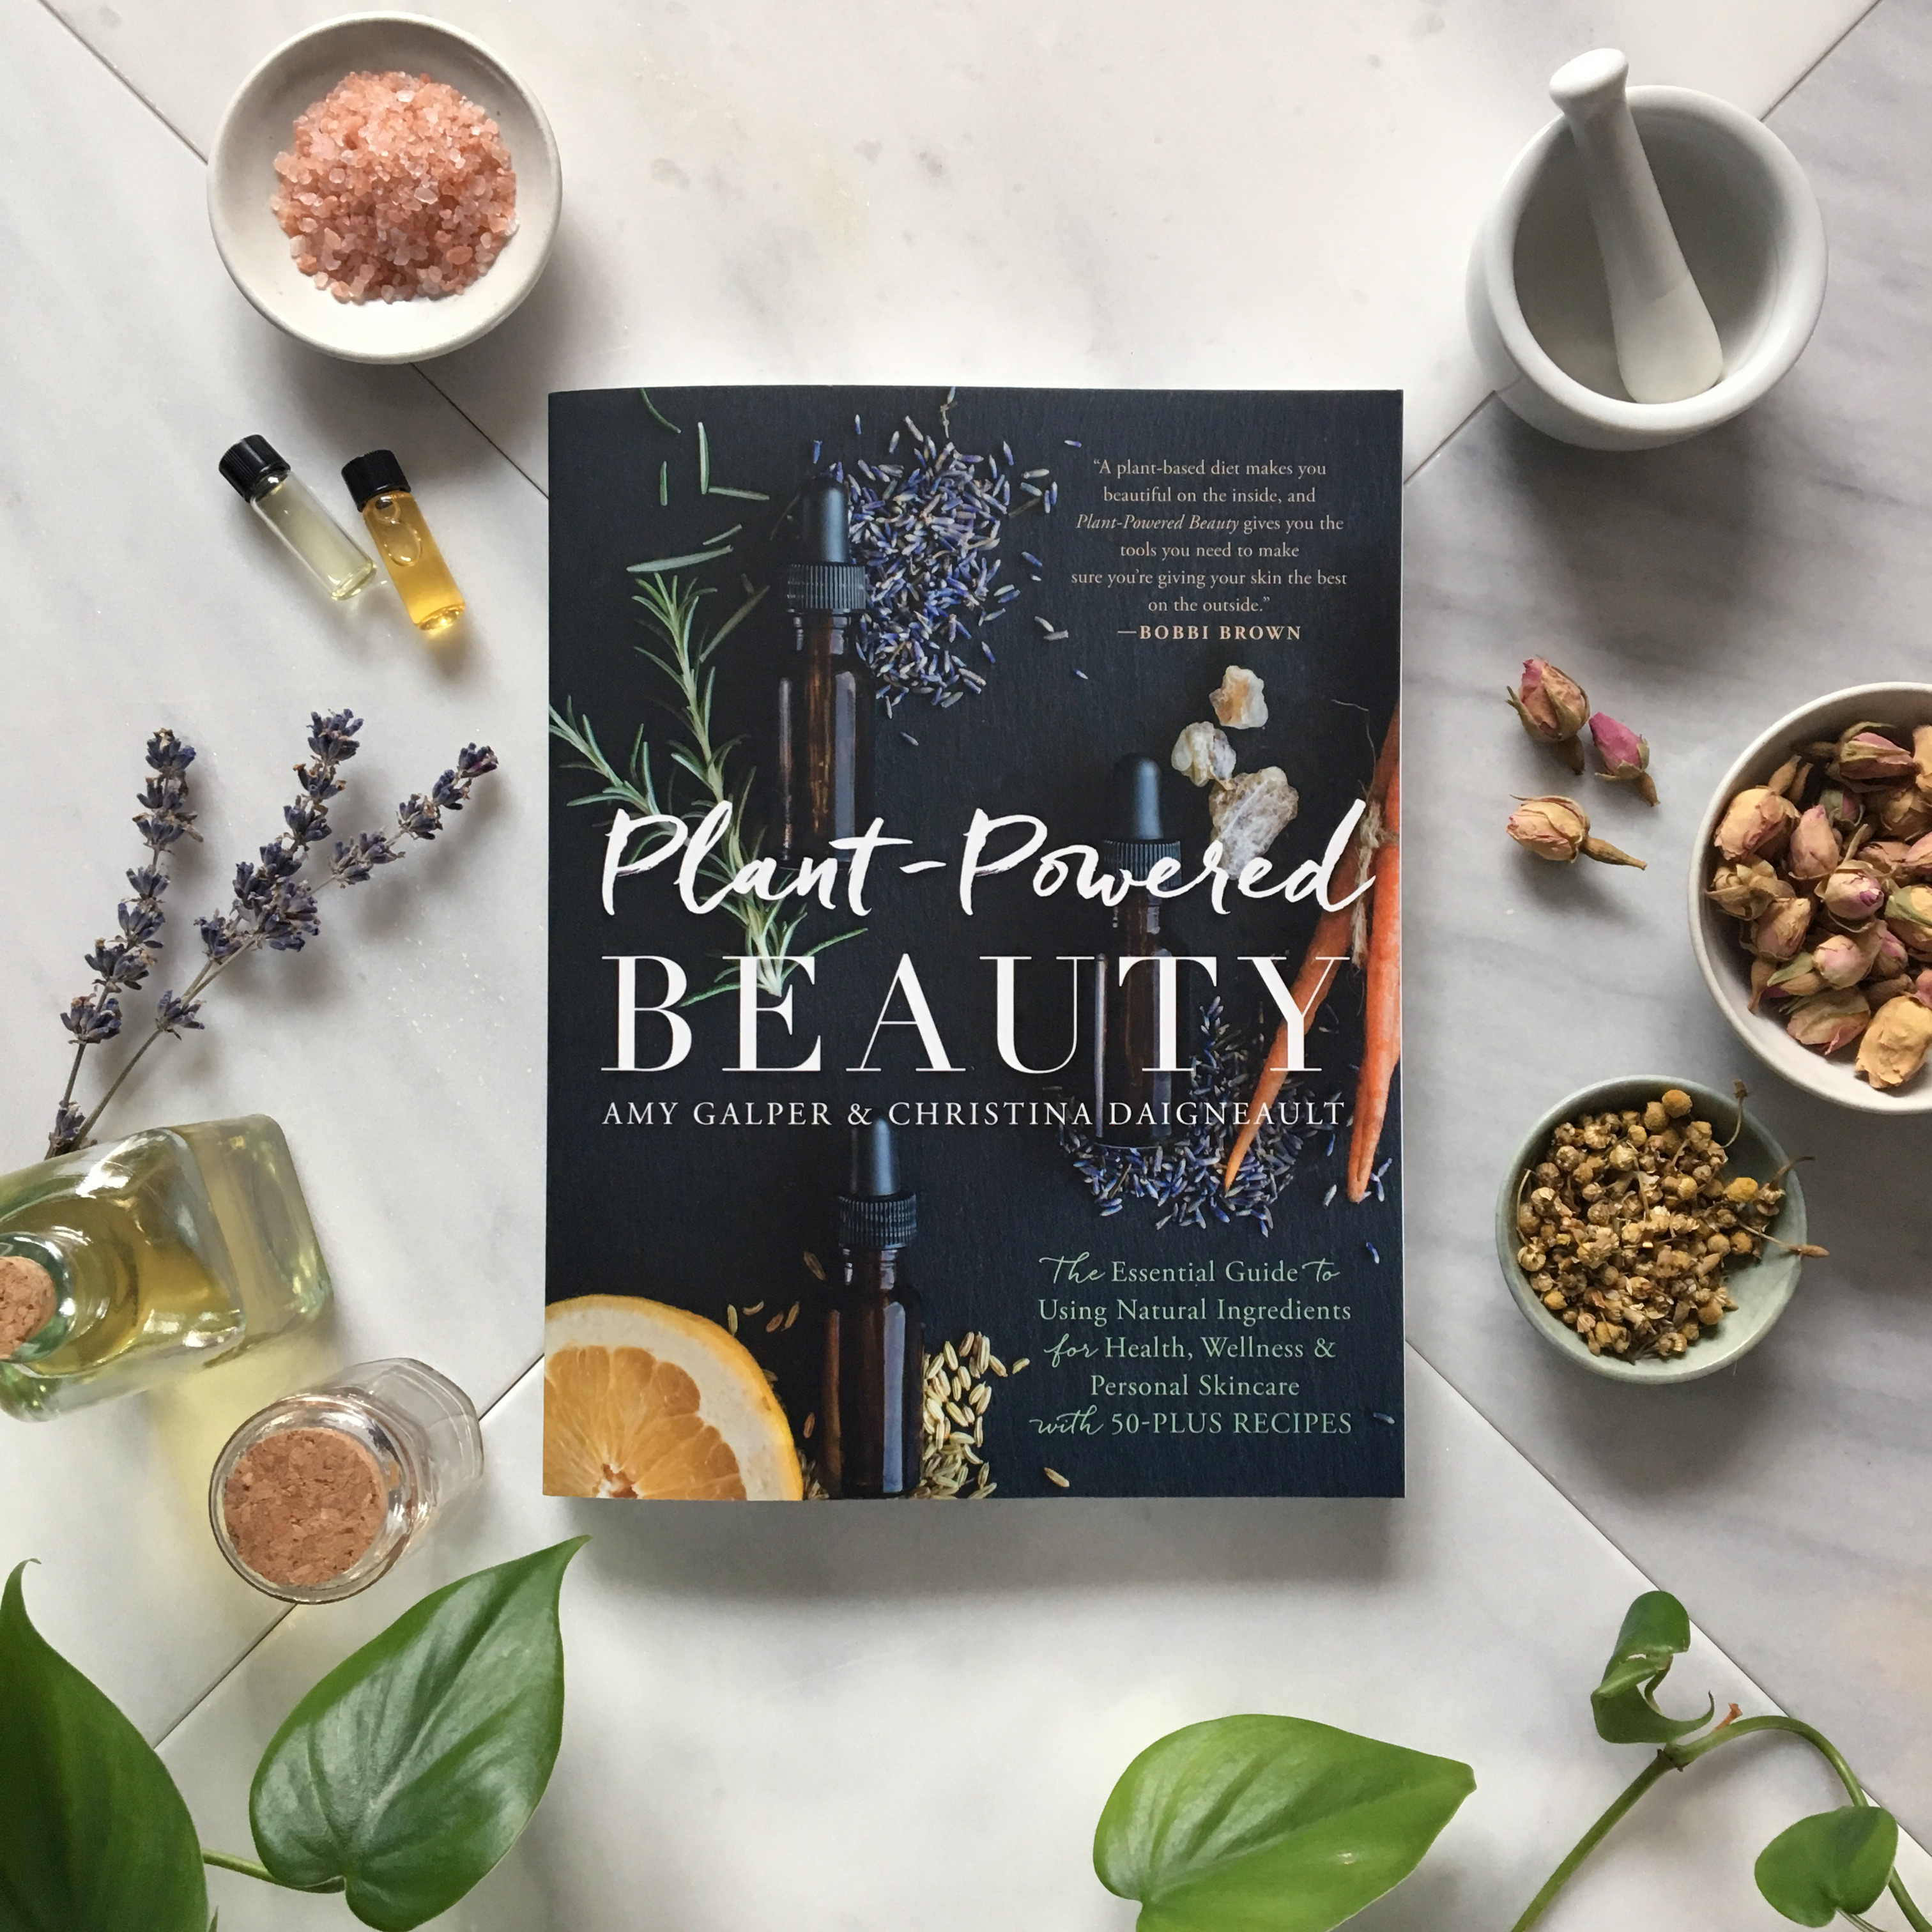 Plant-Powered Beauty Book Review image 2